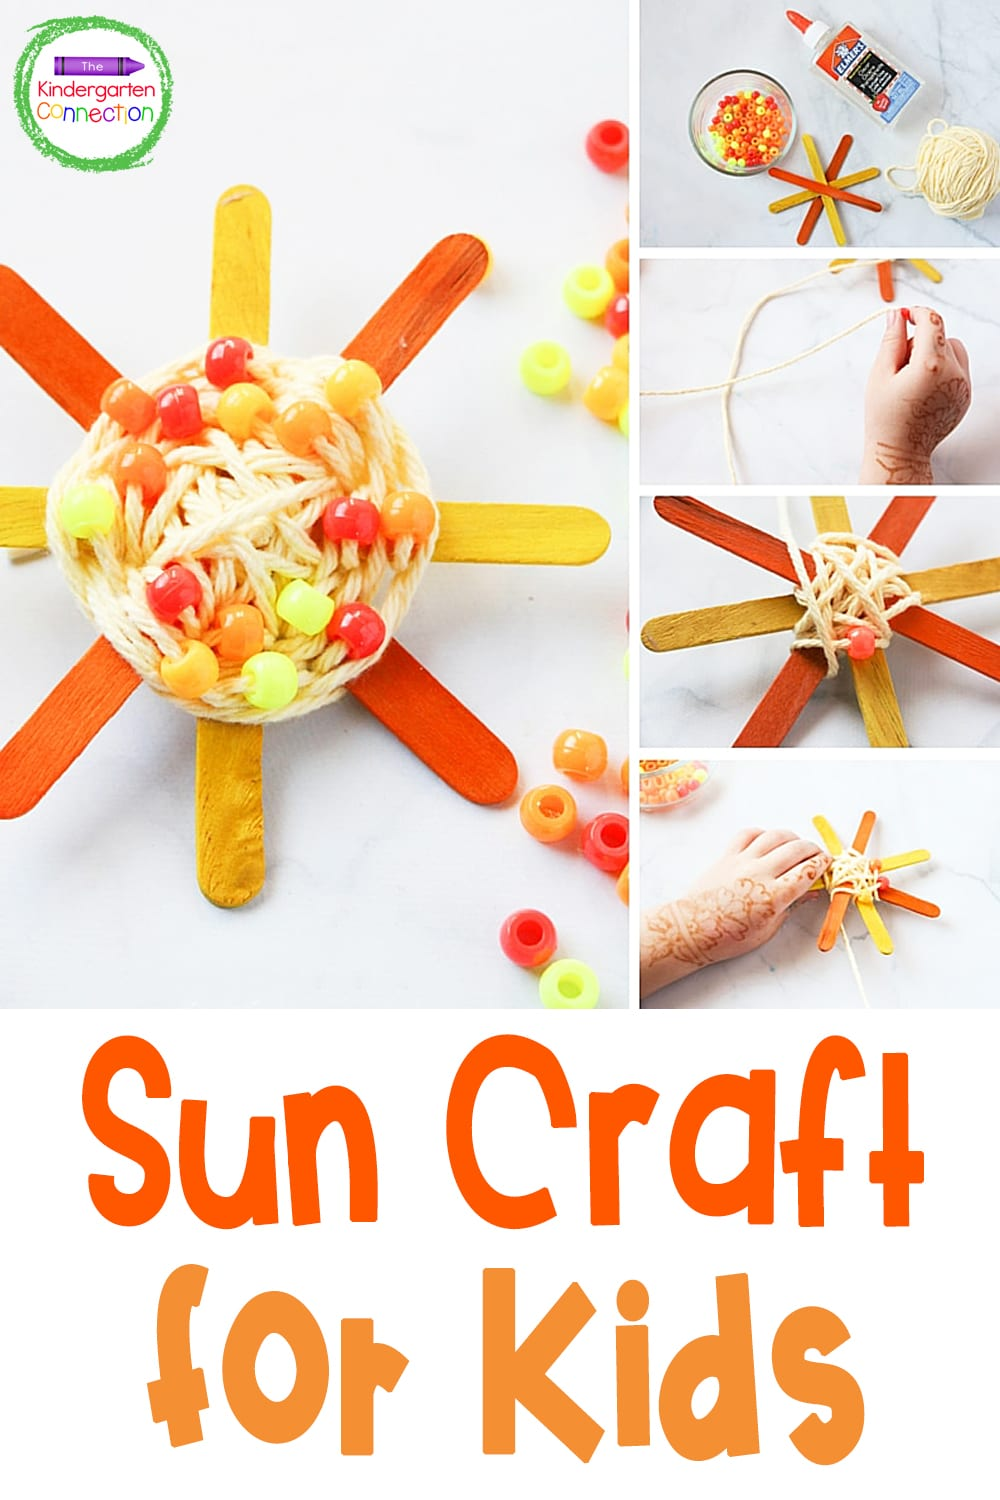 This easy Sun Craft is the perfect summer craft for kids! The suns are bright and colorful, and the weaving builds up fine motor skills, too!